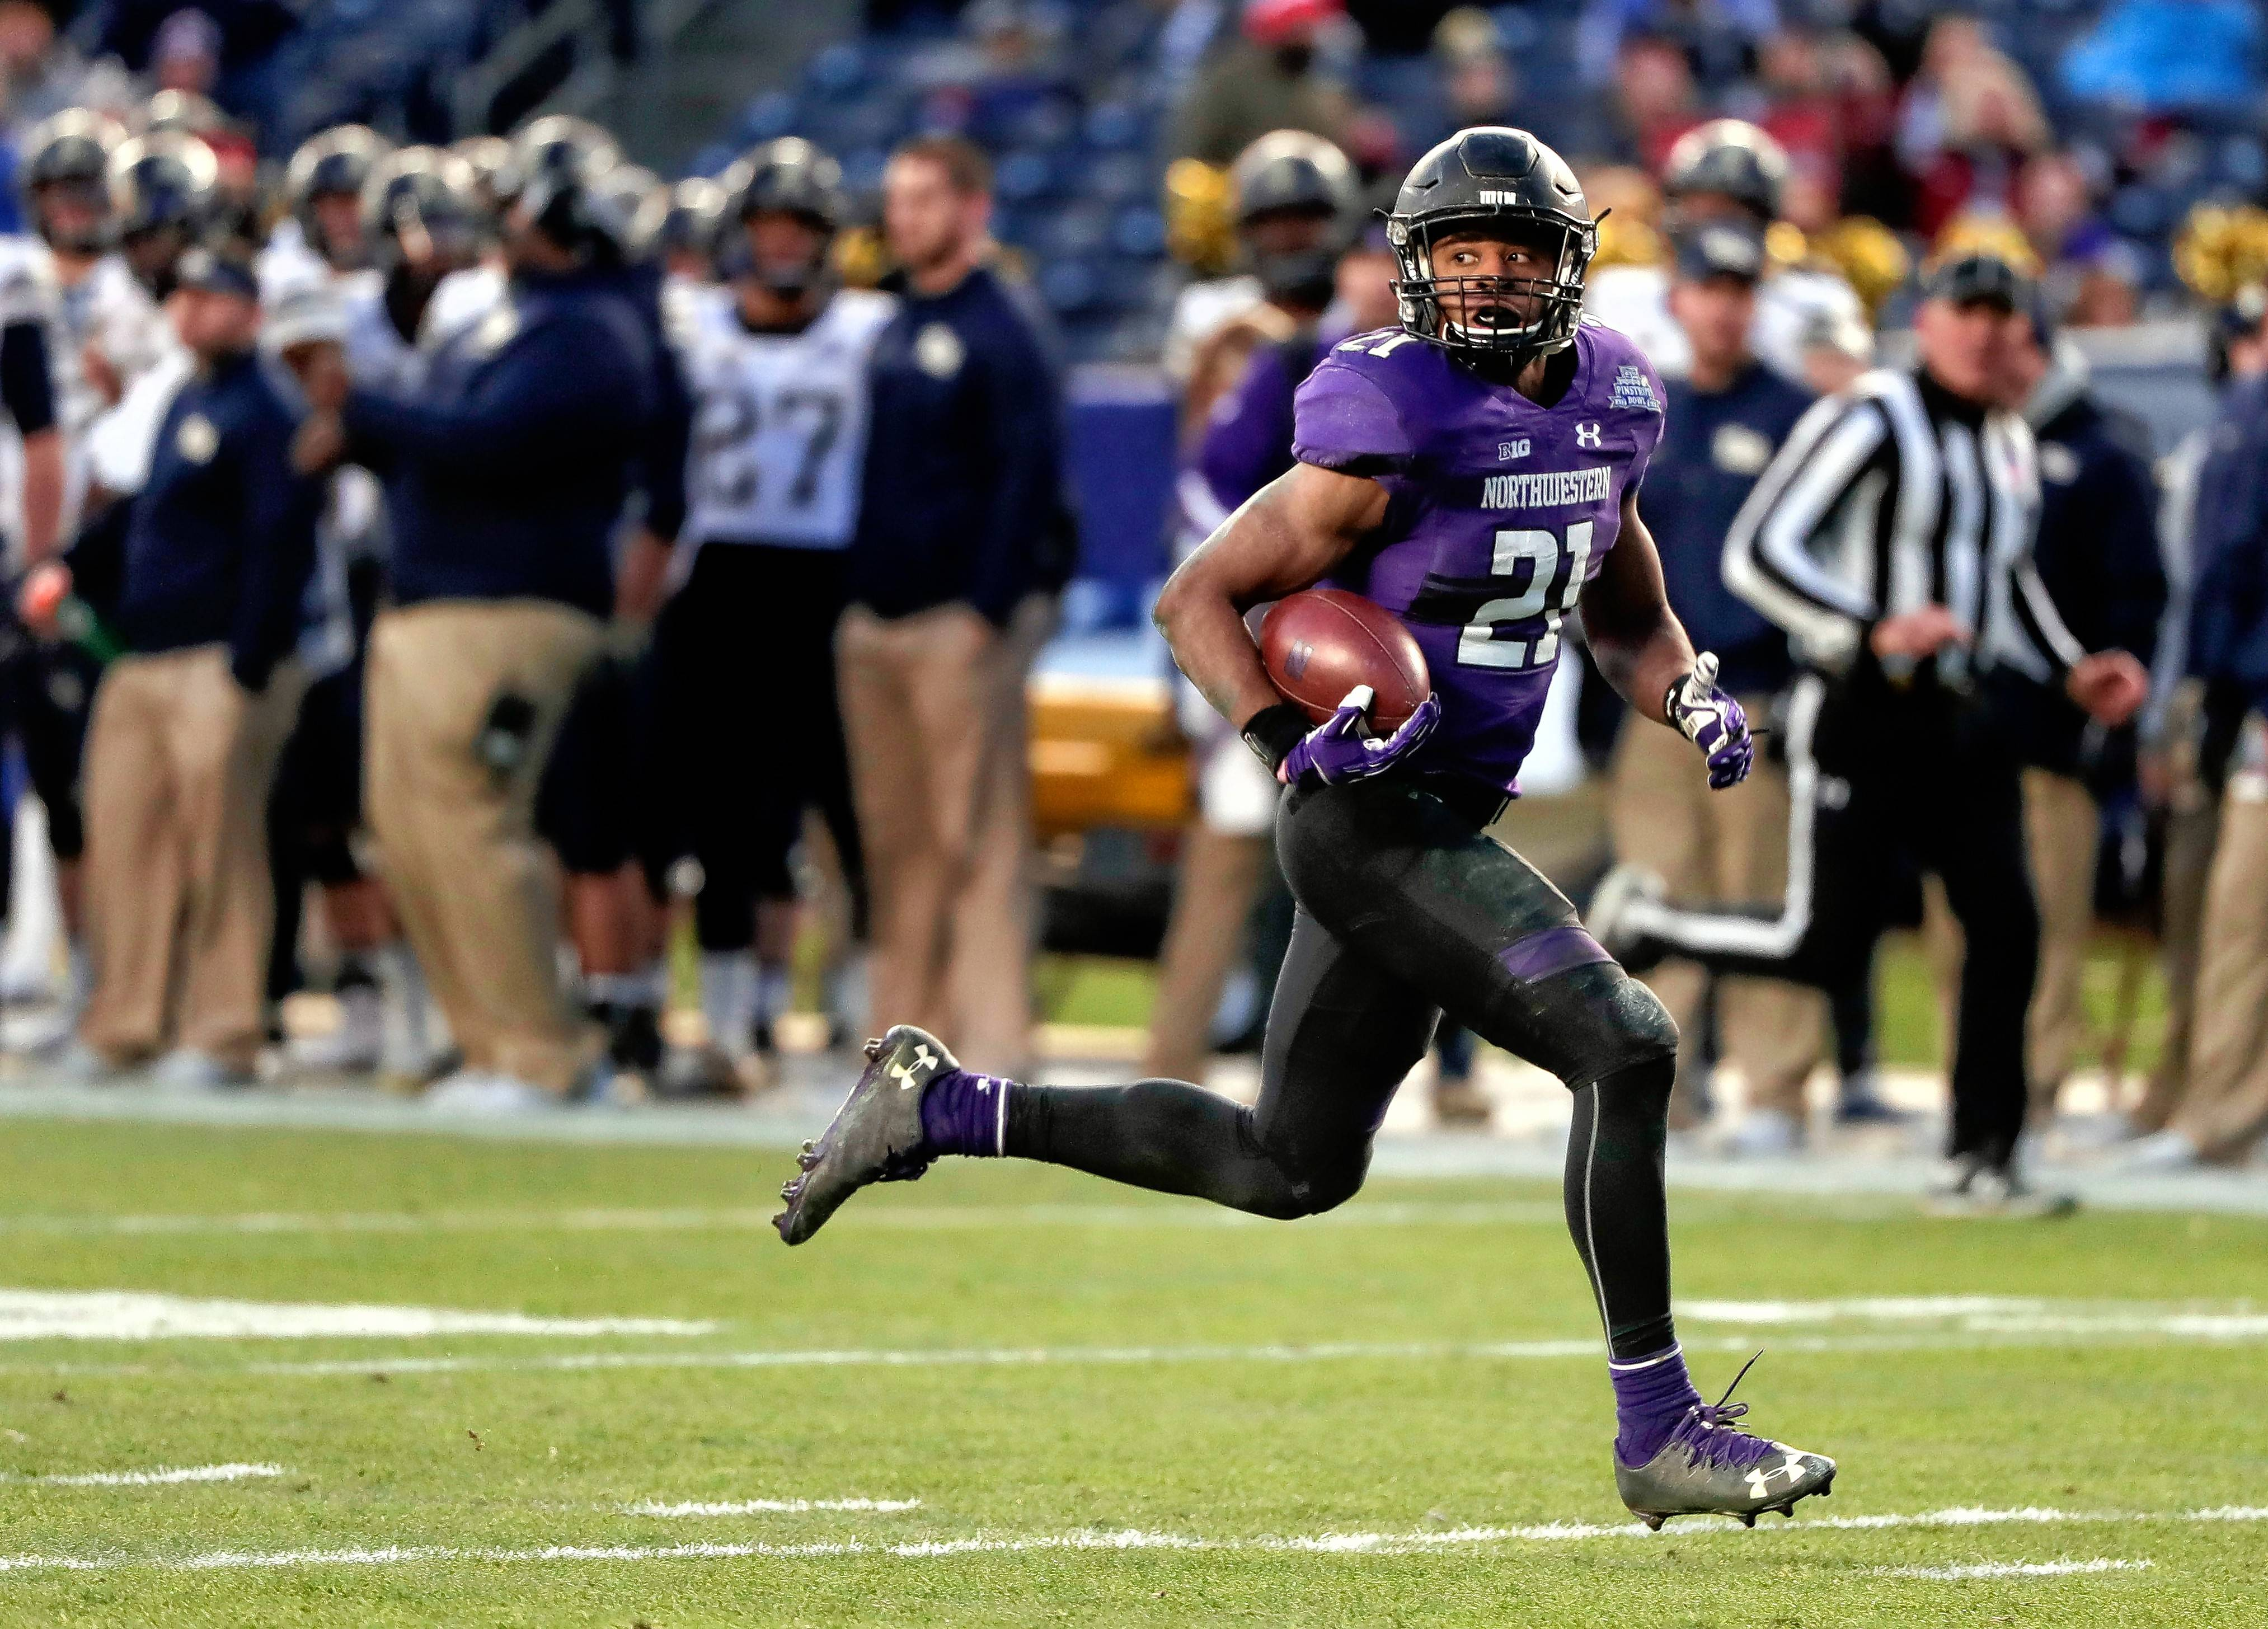 Northwestern running back Justin Jackson is on the verge of breaking the school's career rushing record and could finish his career as No. 2 in the Big Ten.